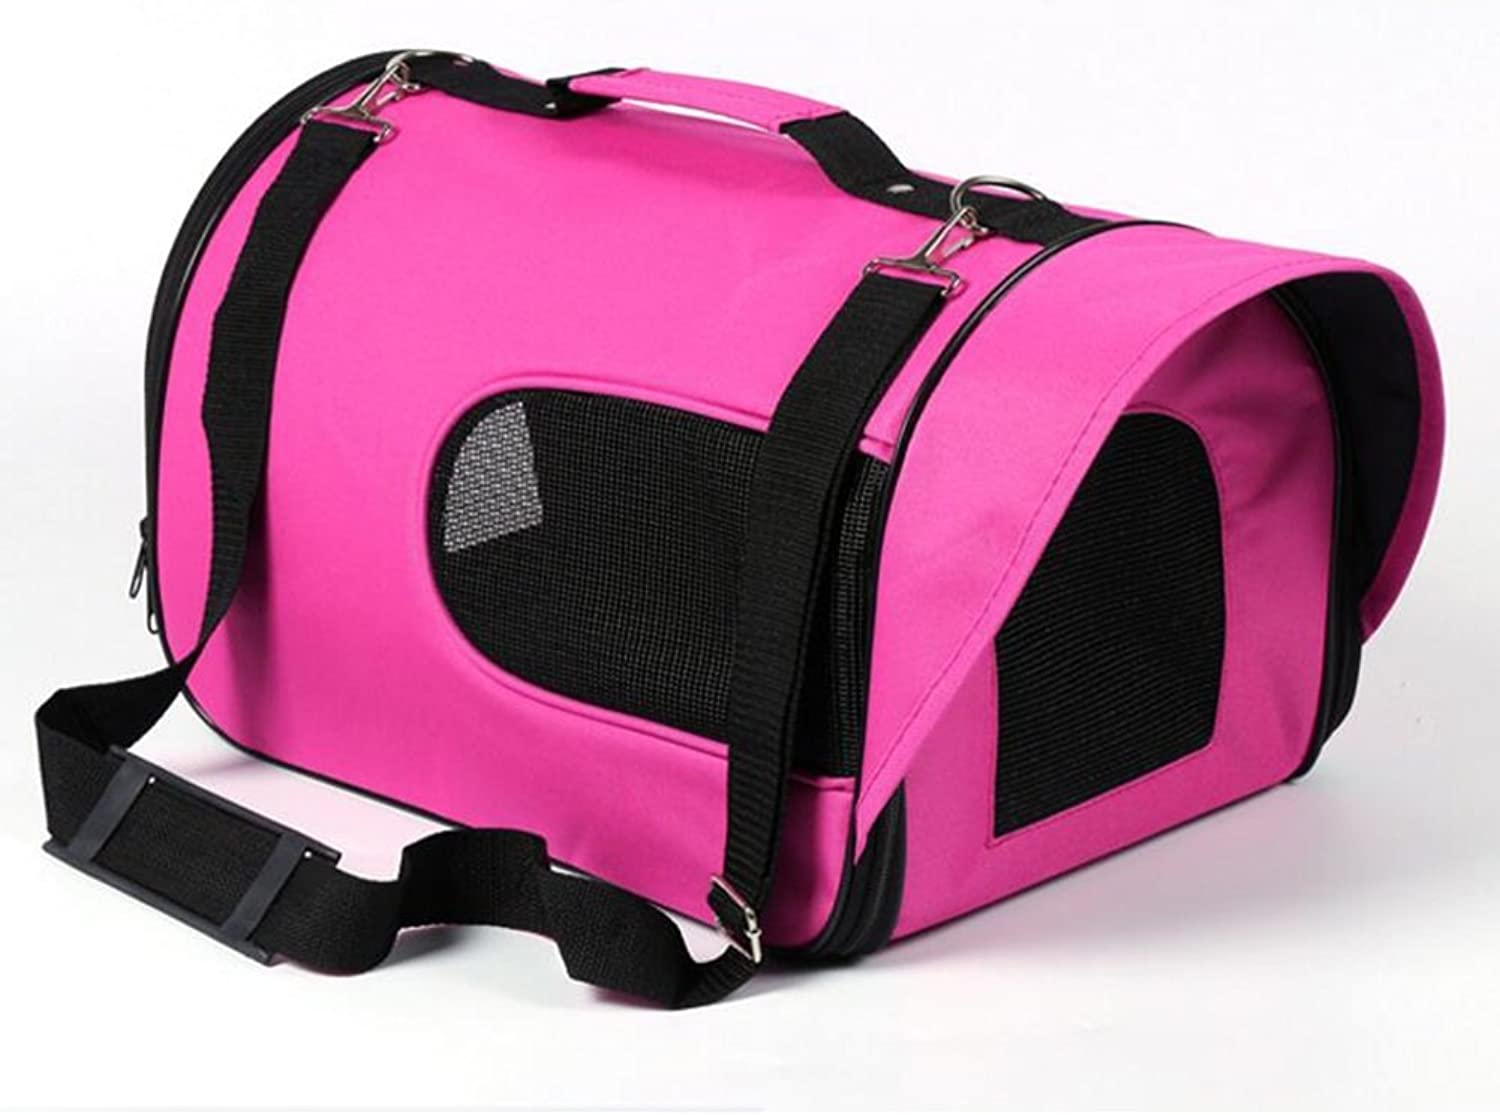 Backpacks YIXIN Cats and Dogs Pet Outdoors Package Oblique Bag Handbag Waterproof Oxford Cloth Easy To Carry pink Red 4 (Size   S31  21  20CM)